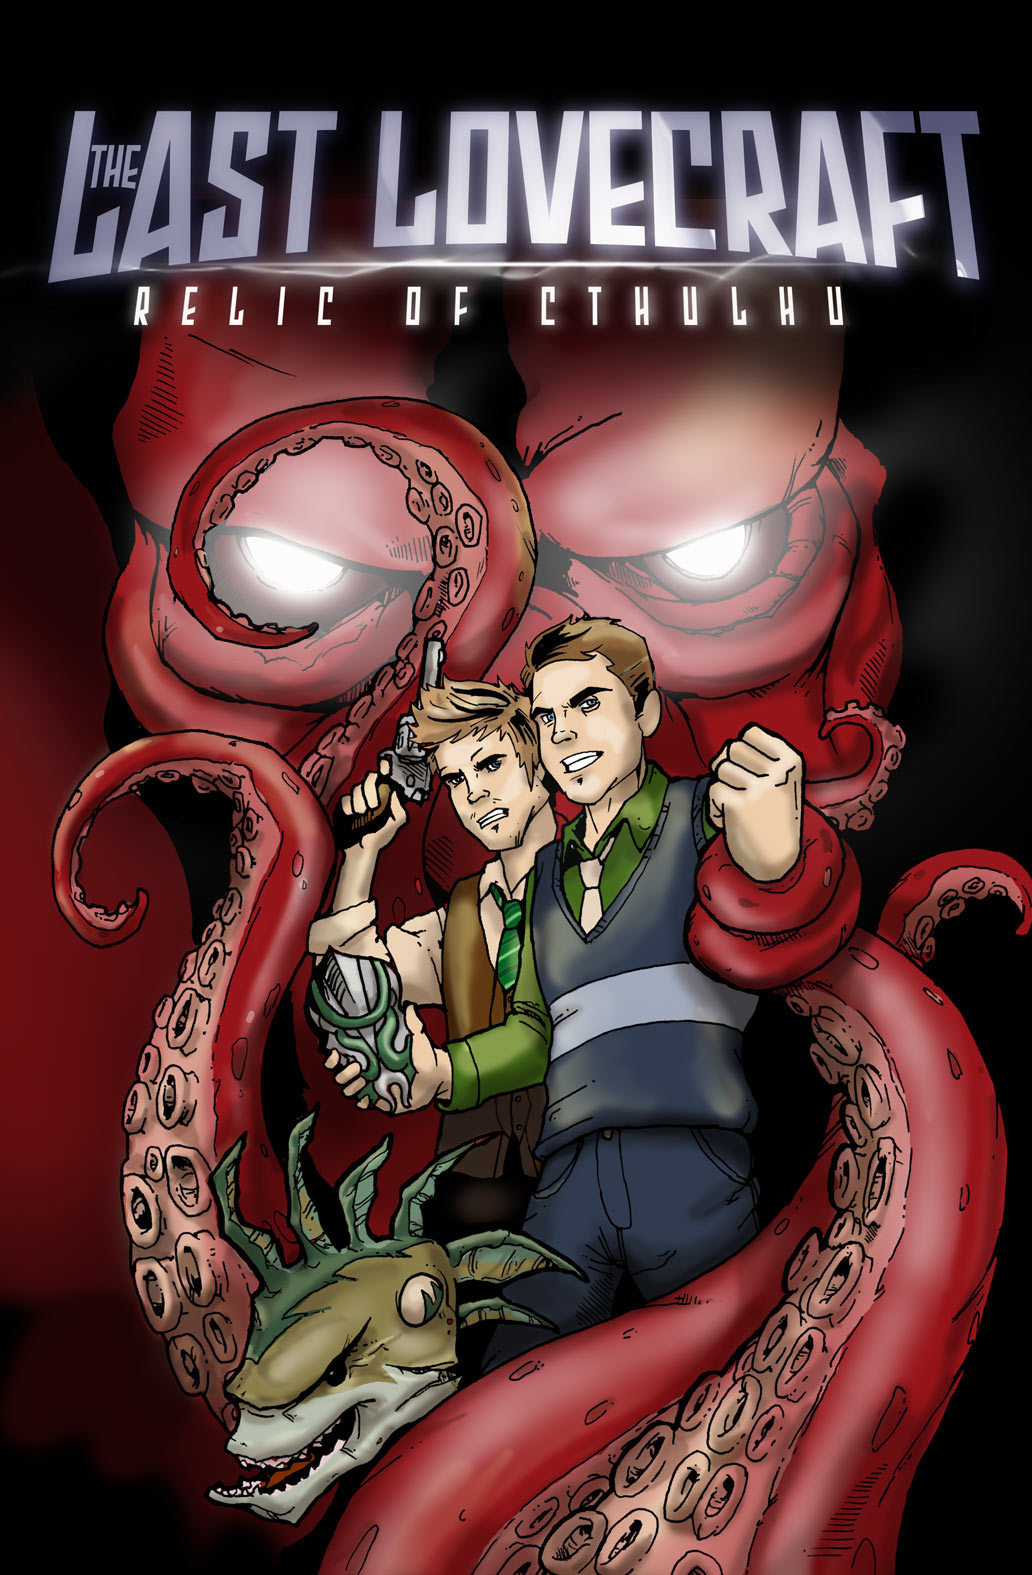 The Last Lovecraft: Relic of Cthulhu (2009) - IMDb